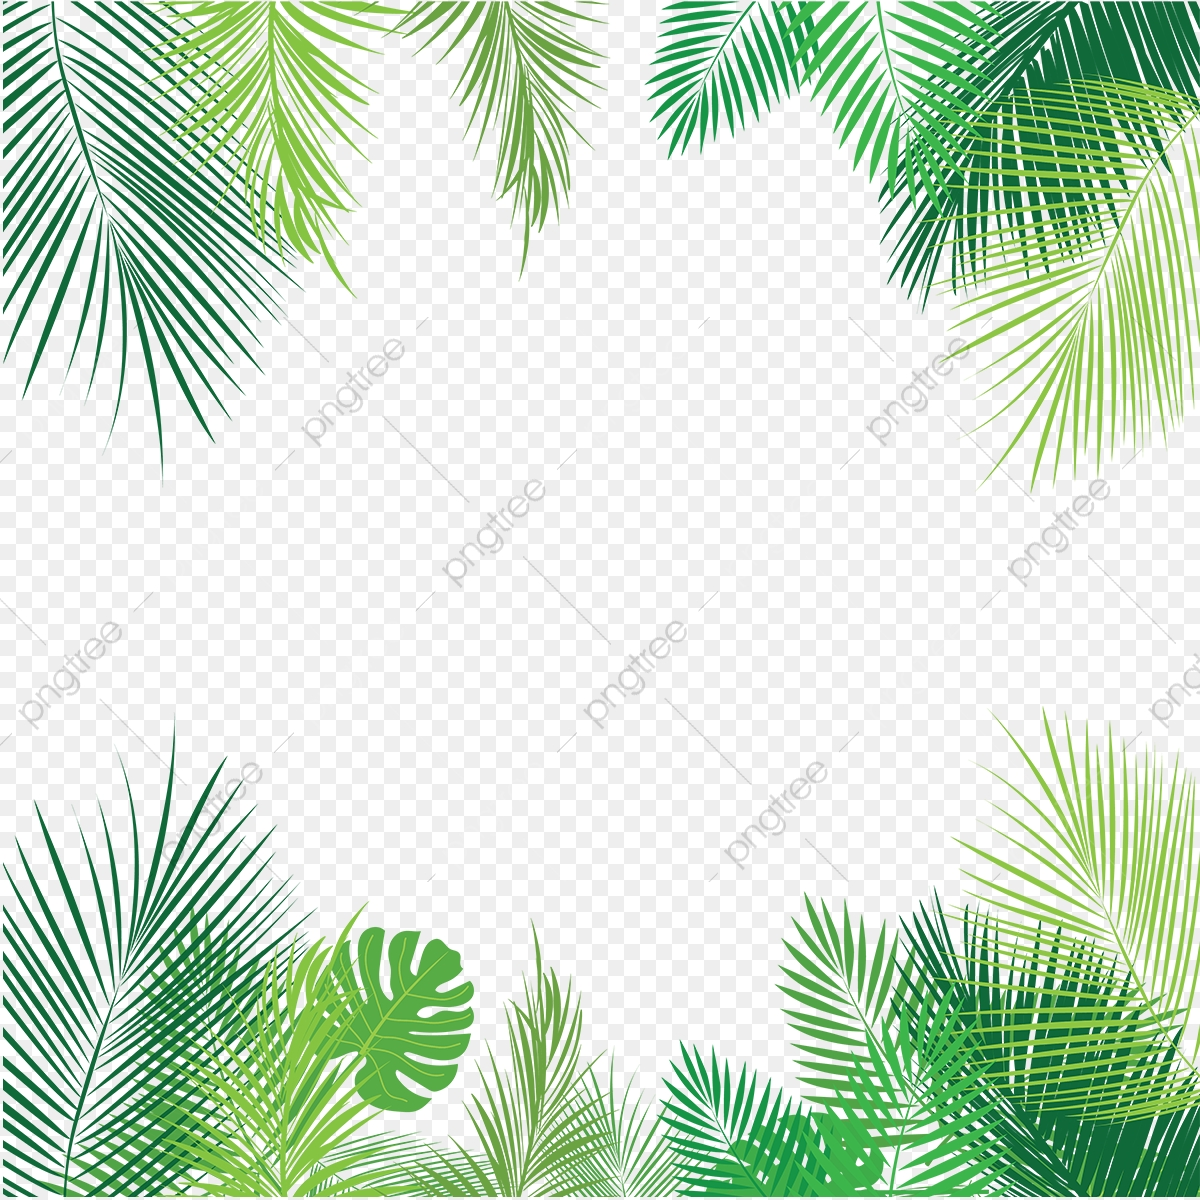 Tropical Palm Leaves Png Png Free Download Palm Tropical Leaves Leaves Png And Vector With Transparent Background For Free Download Here presented 62+ tropical leaf drawing images for free to download, print or share. https pngtree com freepng tropical palm leaves png png free download 3553609 html